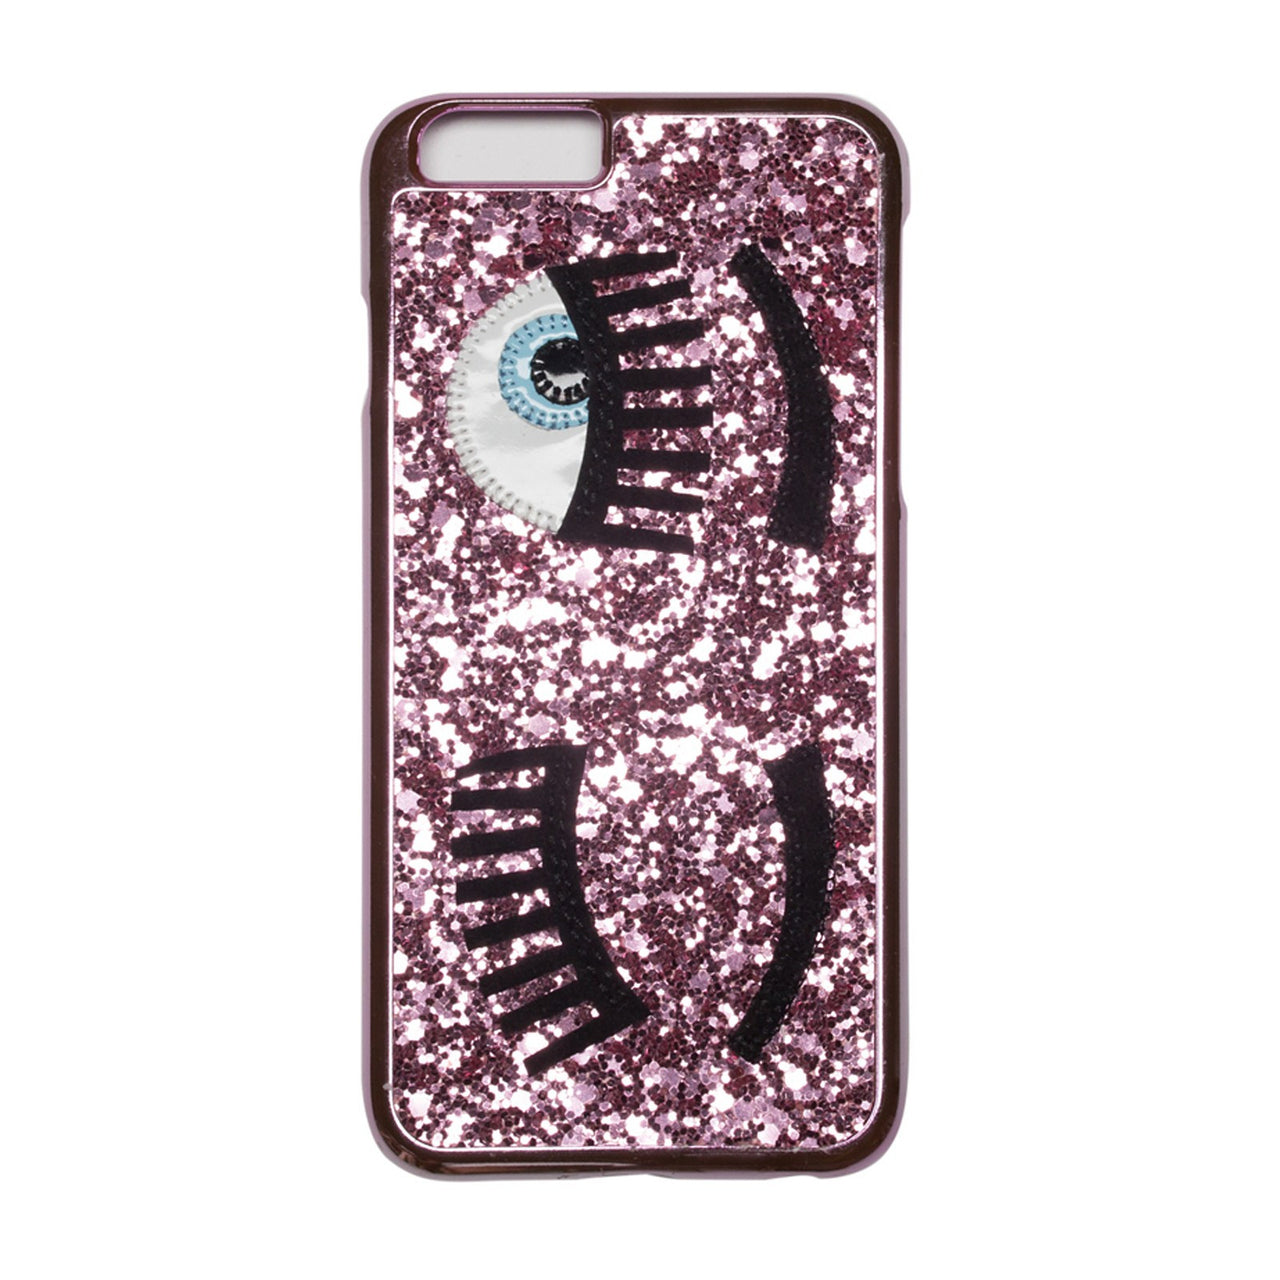 Chiara Ferragni 'Flirting' iPhone Case - Pink